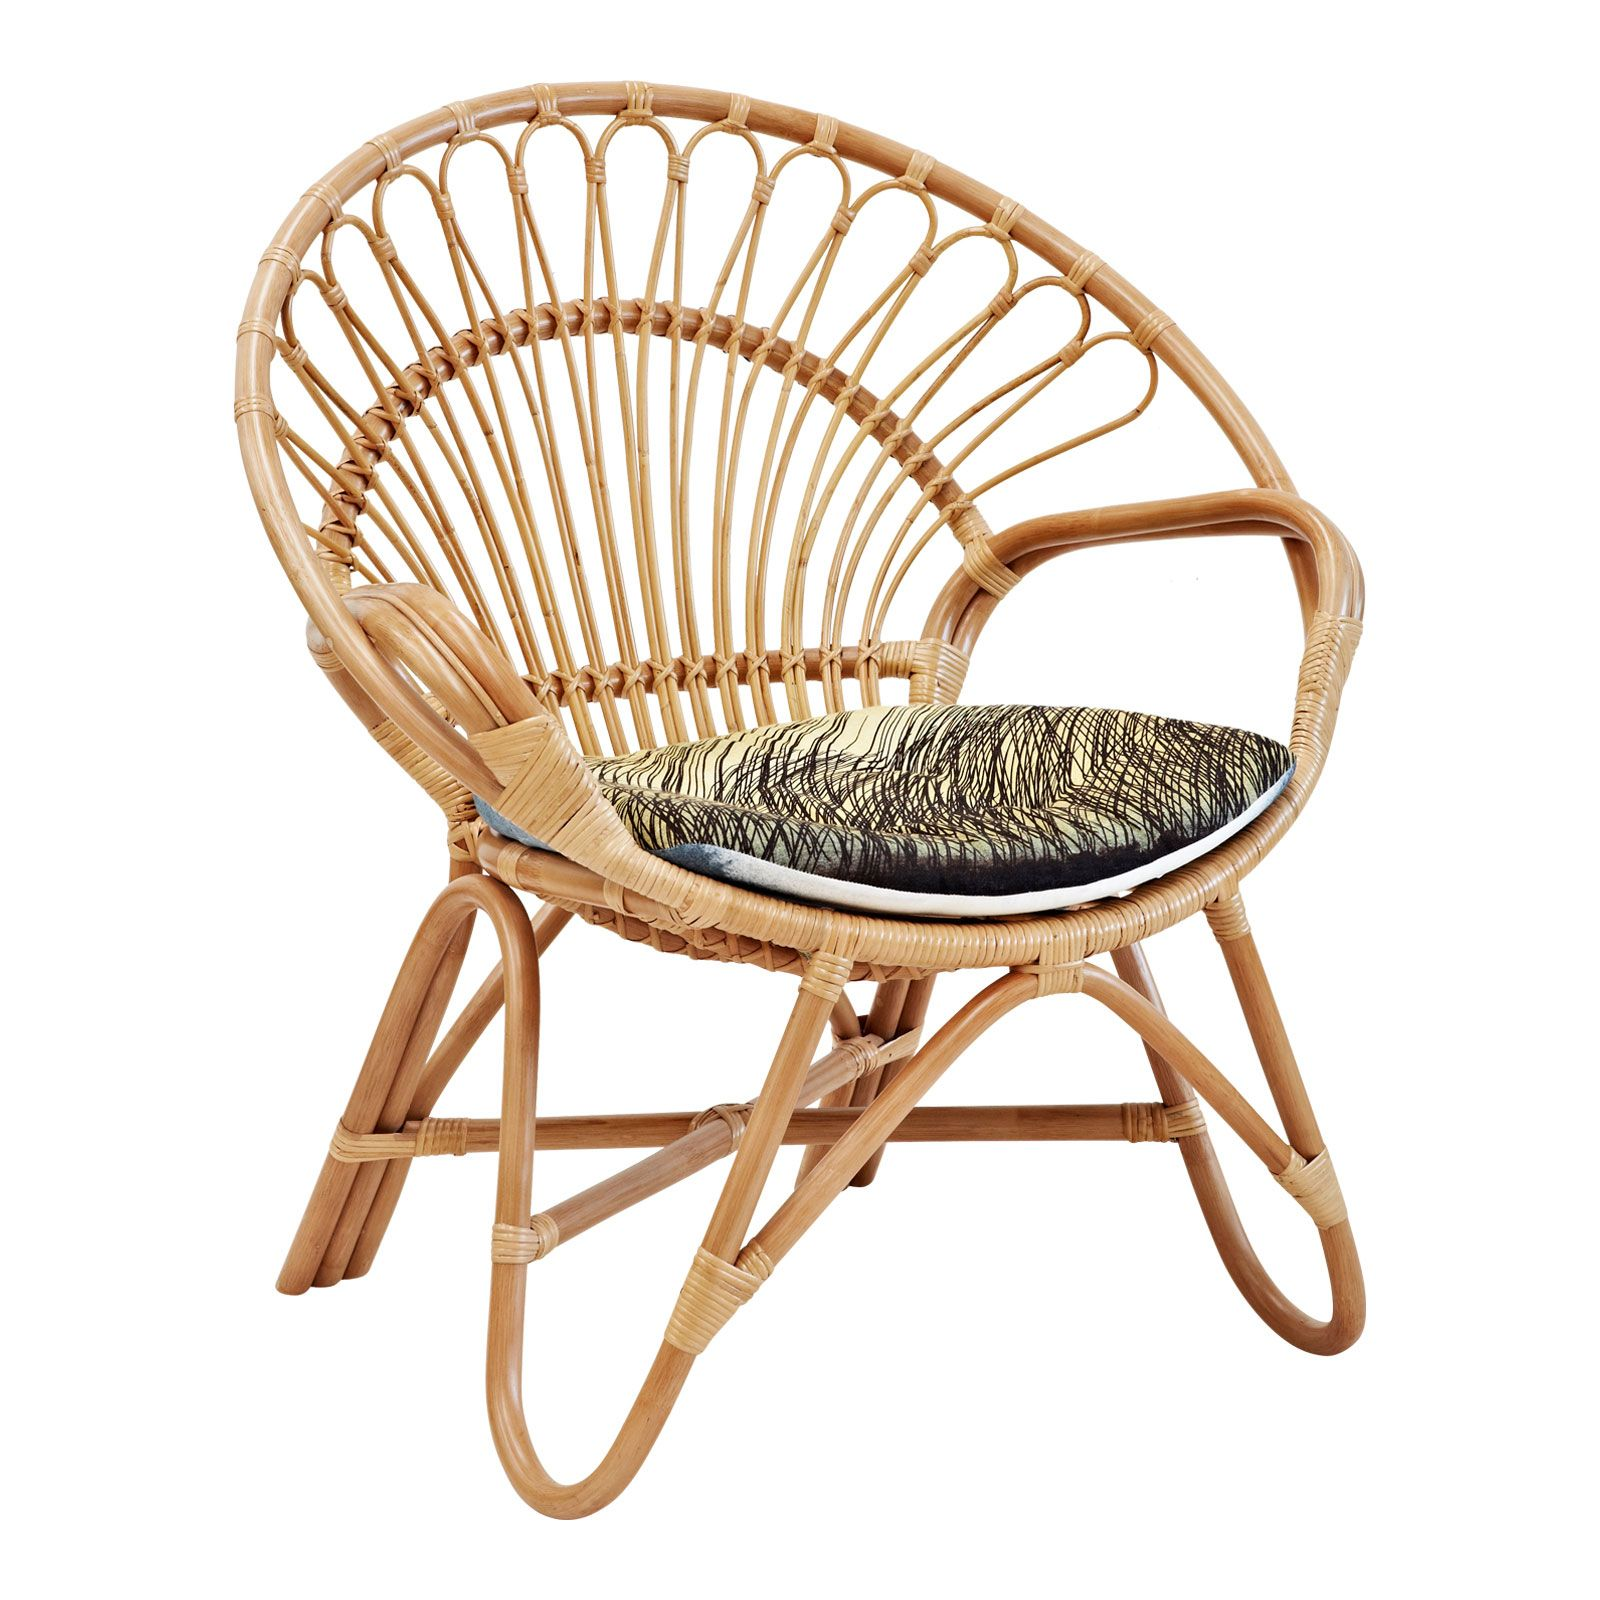 Awesome Round Chair Natural $459